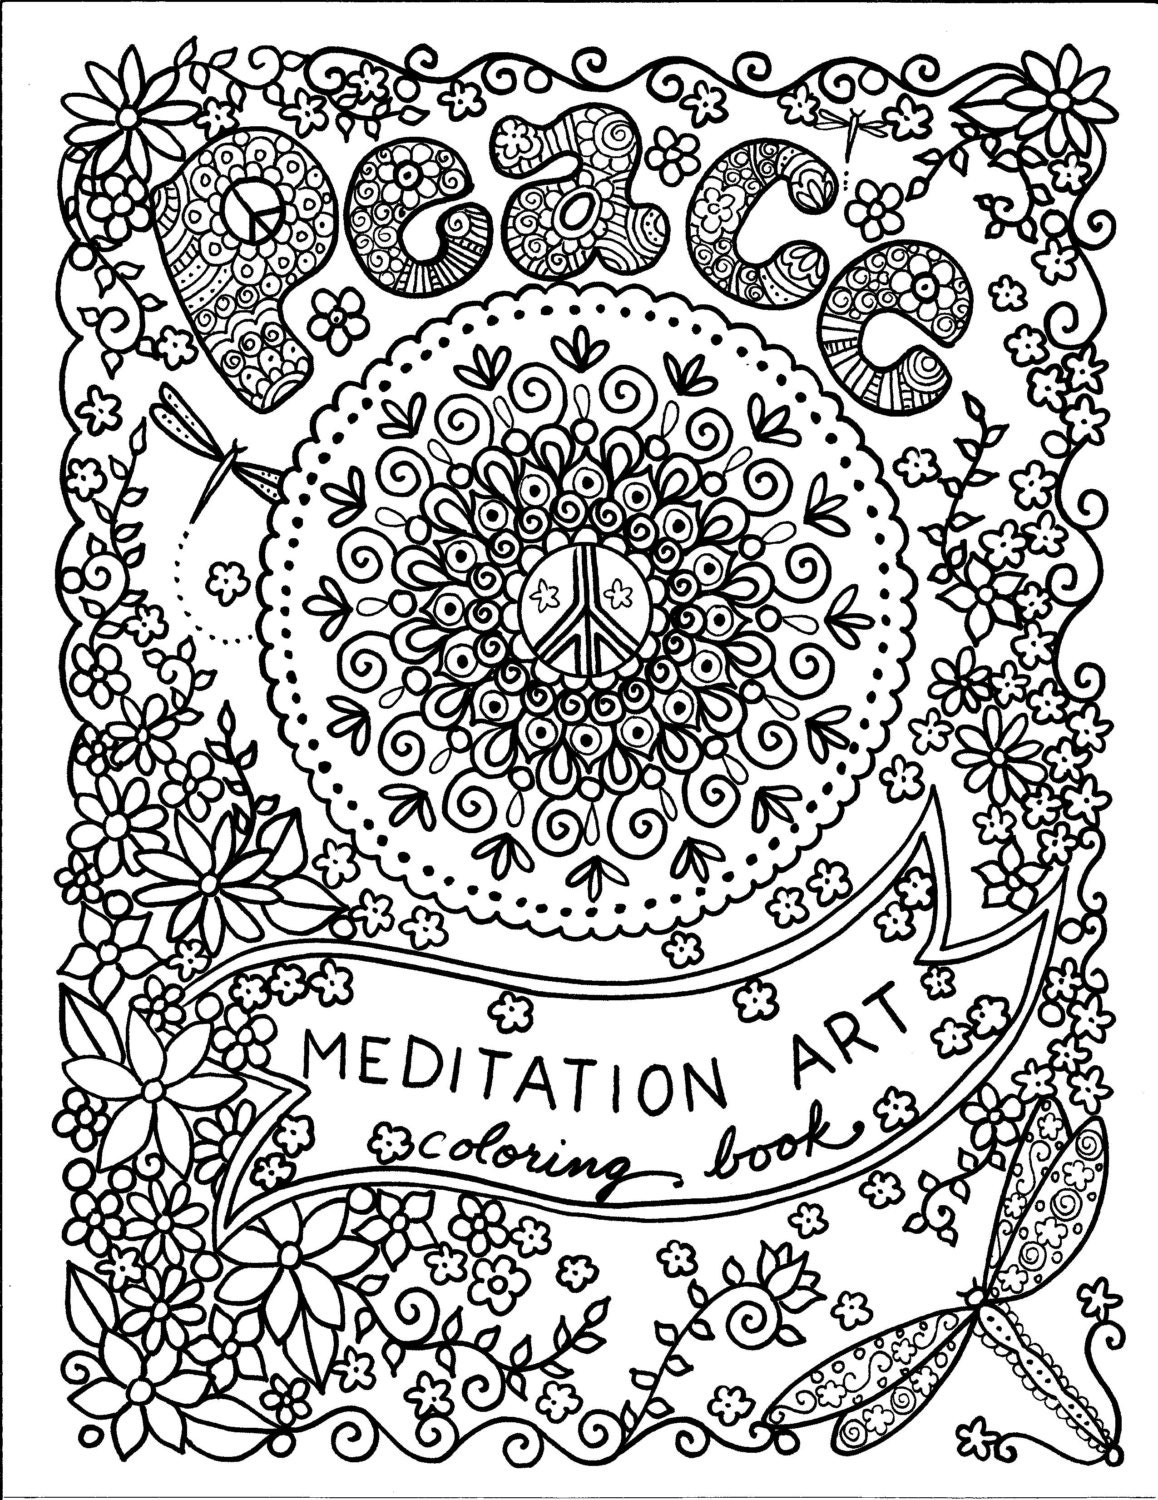 Coloring Books For Meditation Yoga And Meditation Meditative Coloring Pages